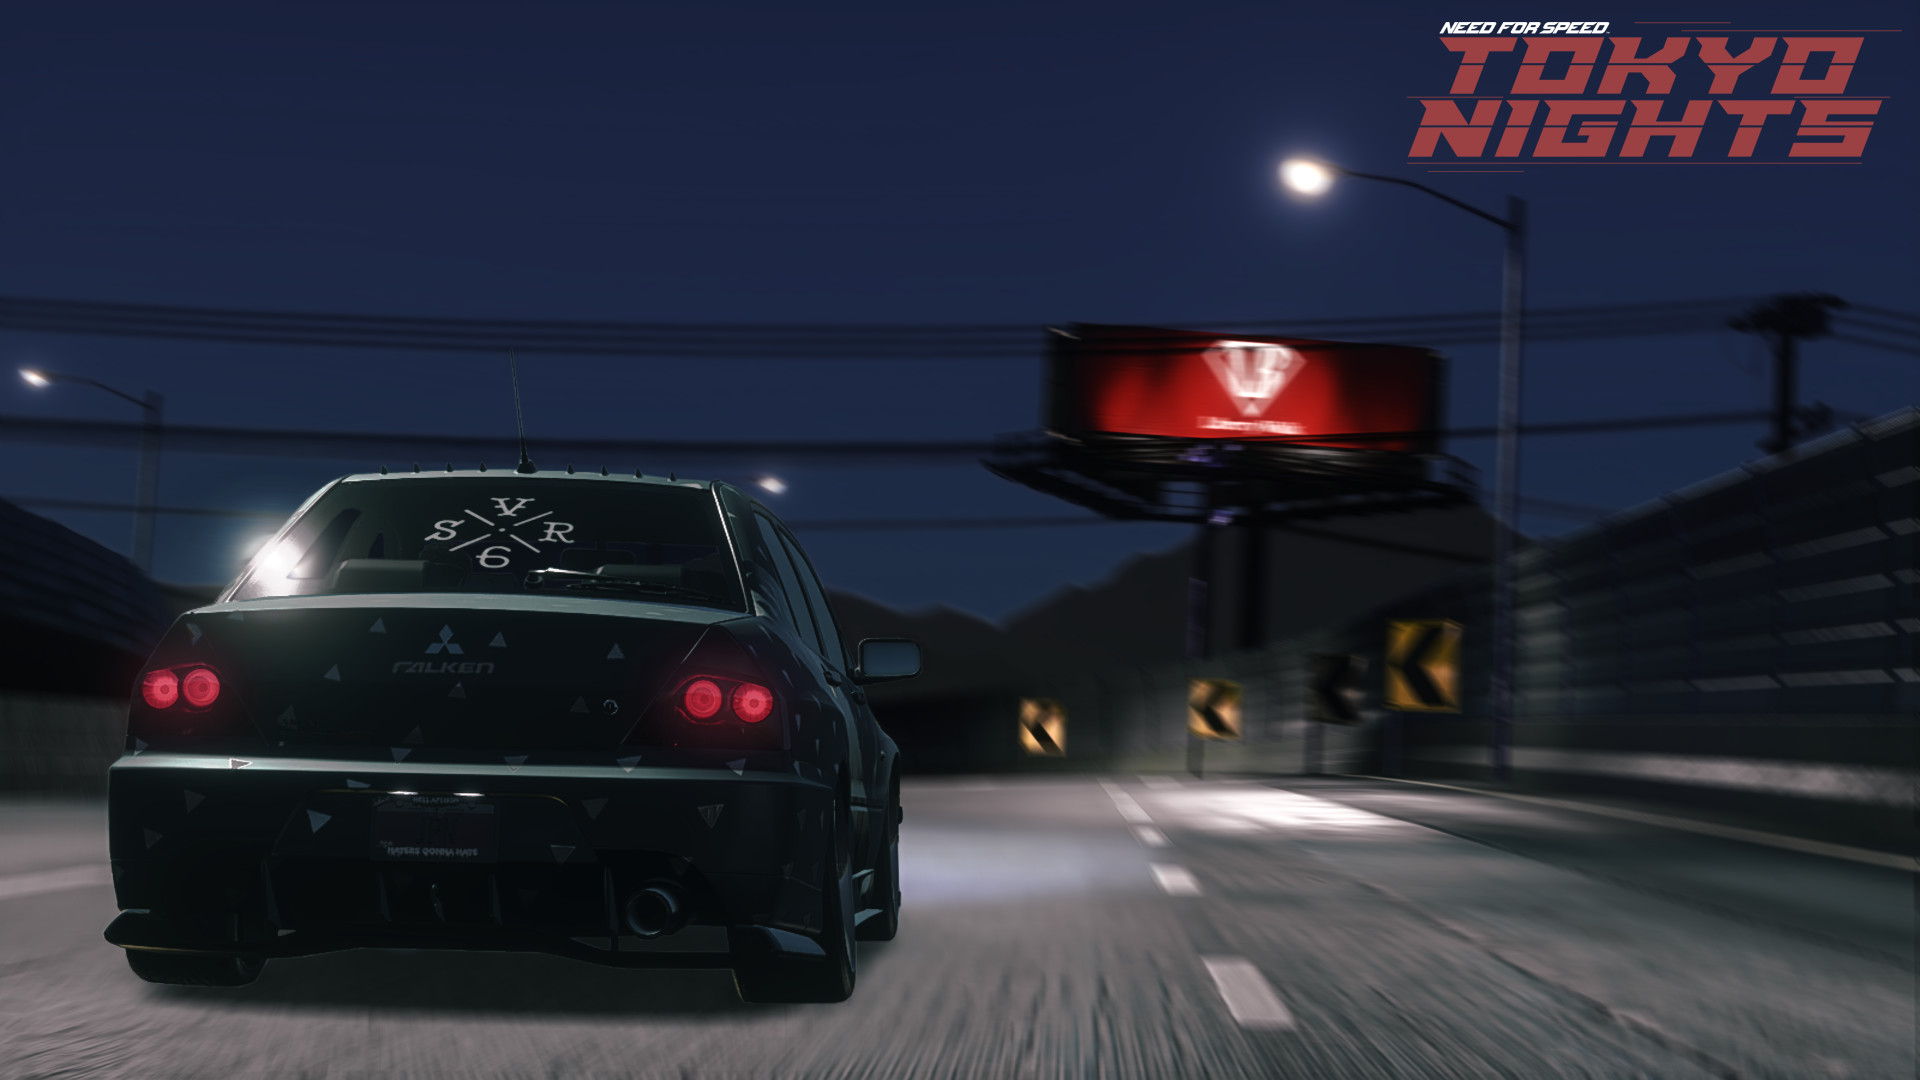 need for speed tokyo nights